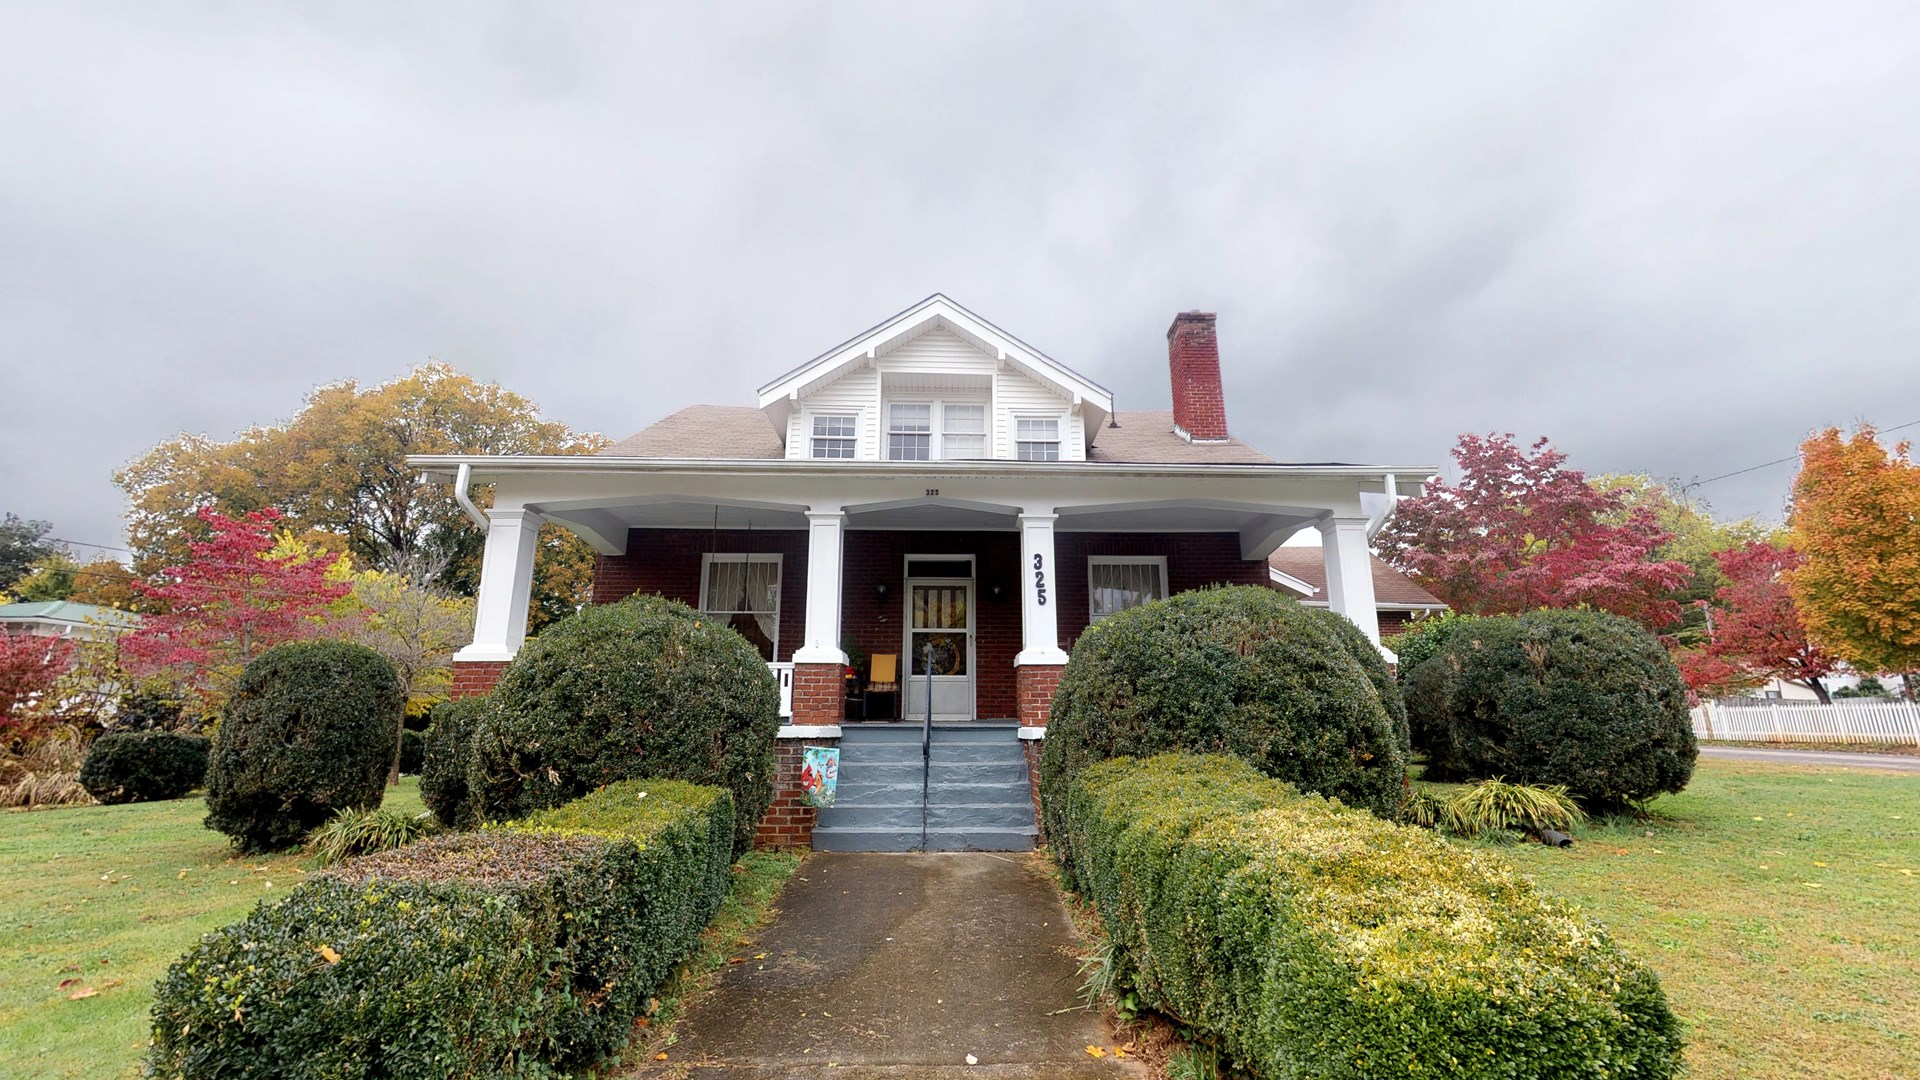 East Tennessee Historical Home For Sale | Morristown Tenn